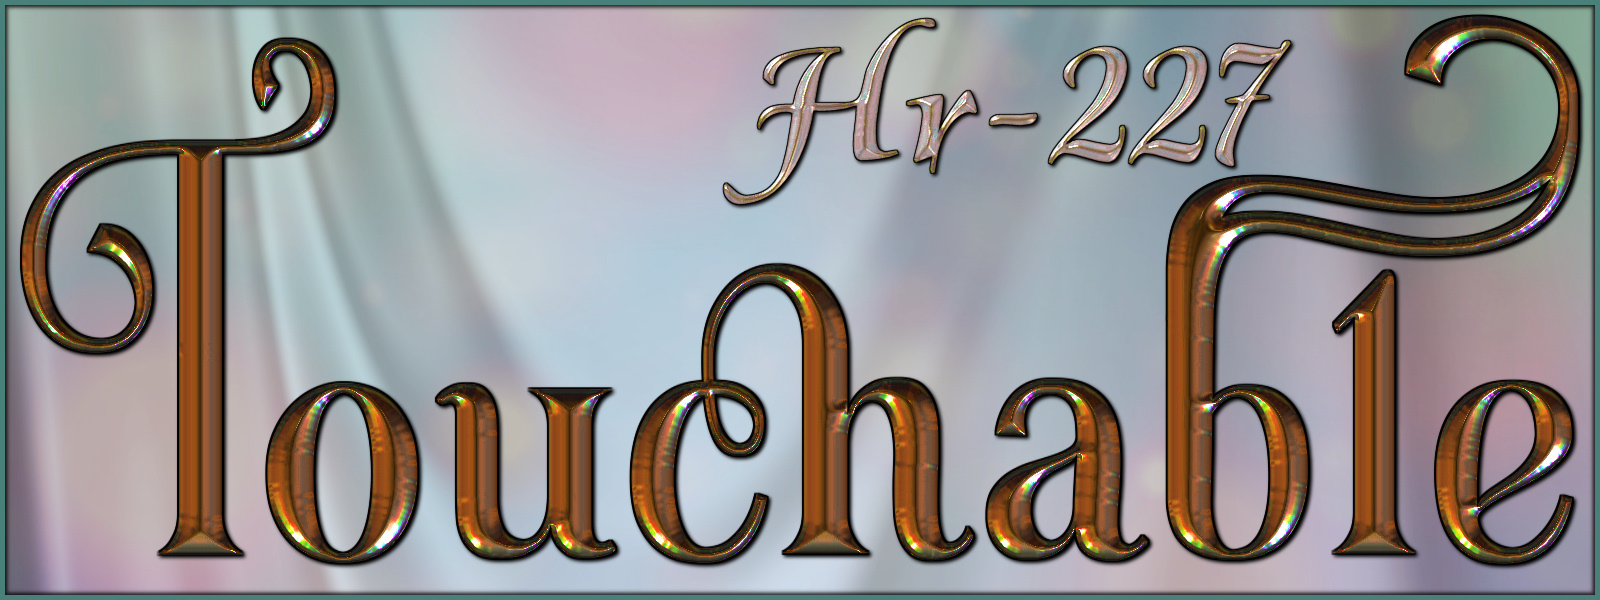 Touchable Hr-227 by -Wolfie-